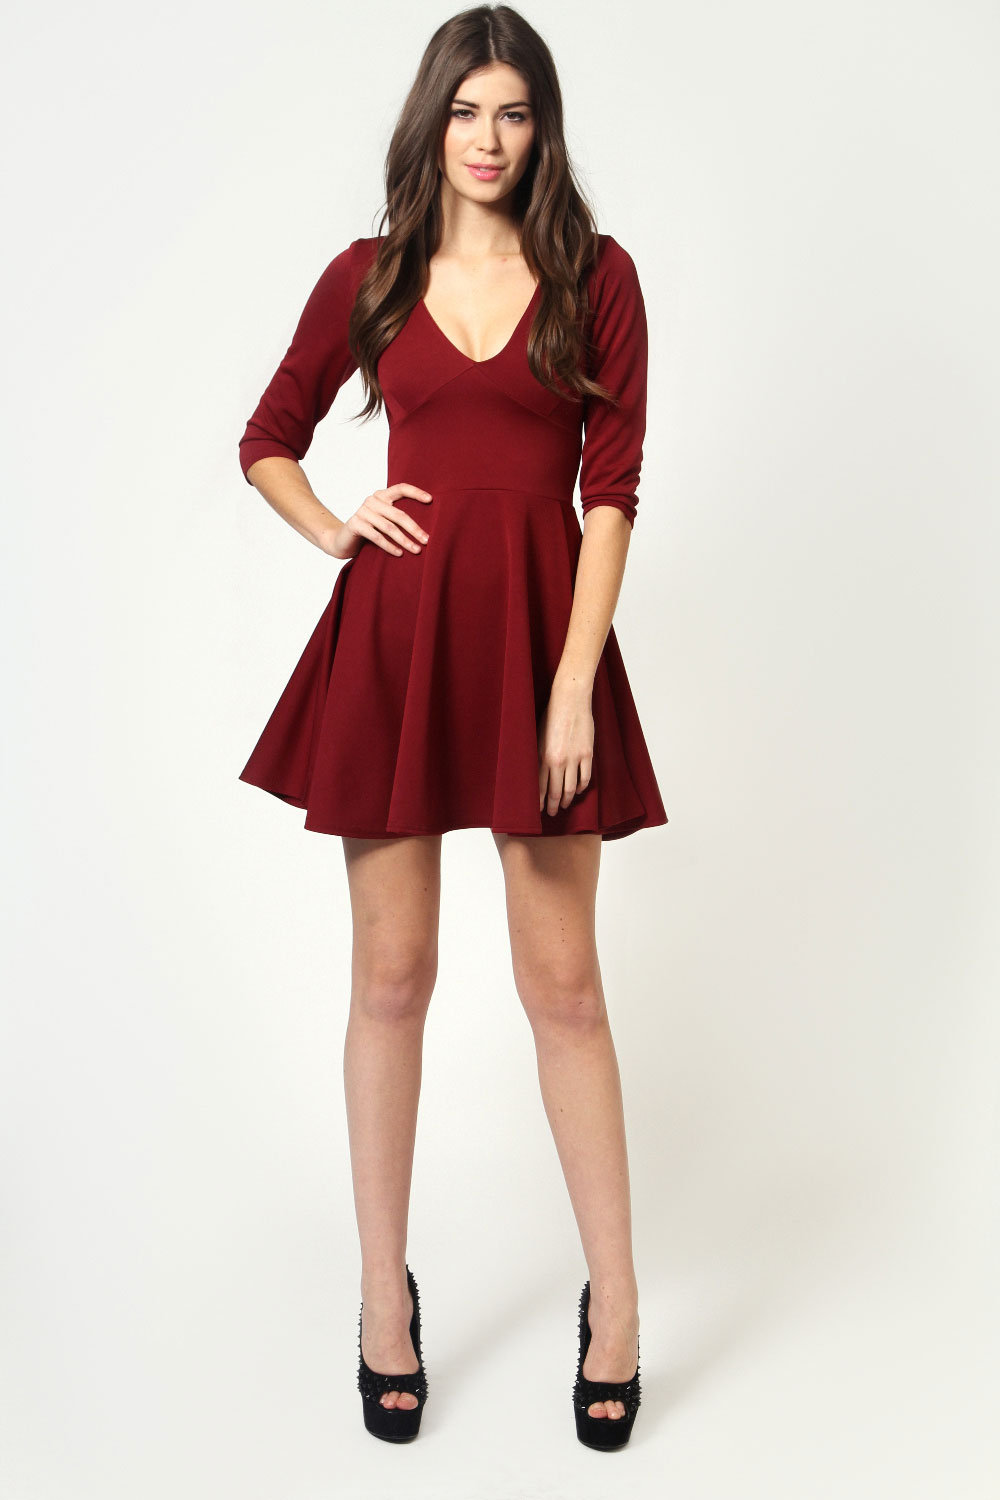 Skater dresses with sleeves